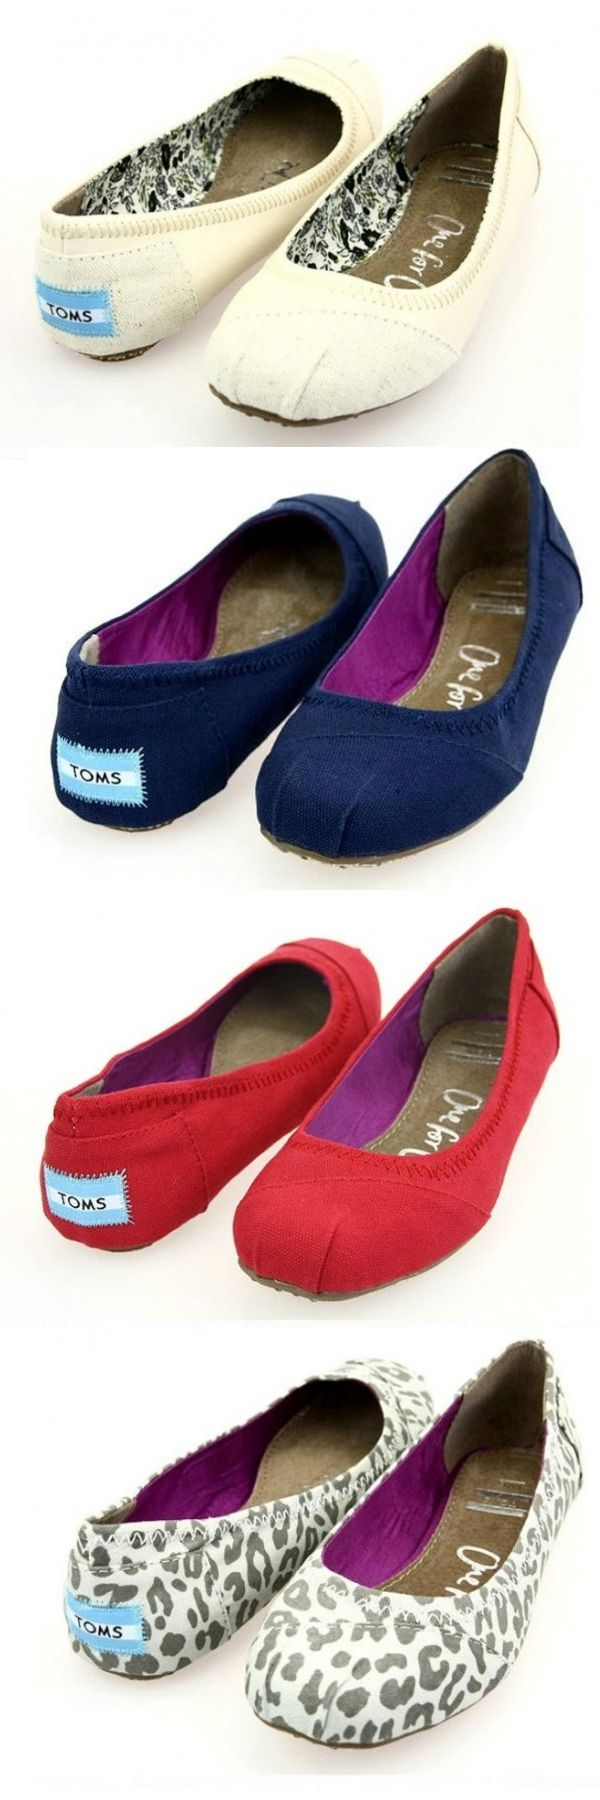 $19 toms flats they are so cute